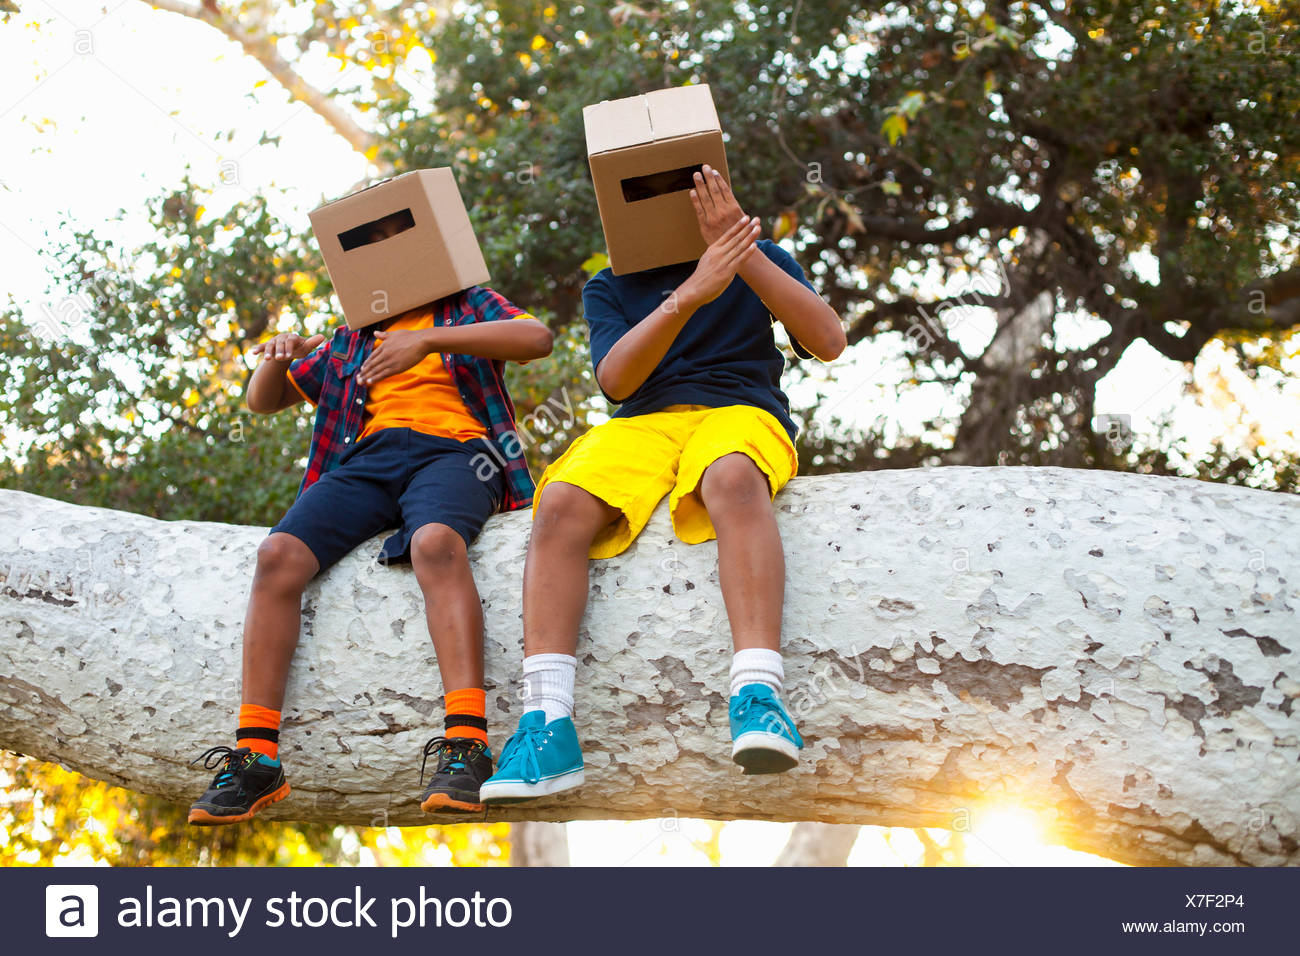 Two brothers sitting on park tree branch with cardboard boxes on heads - Stock Image